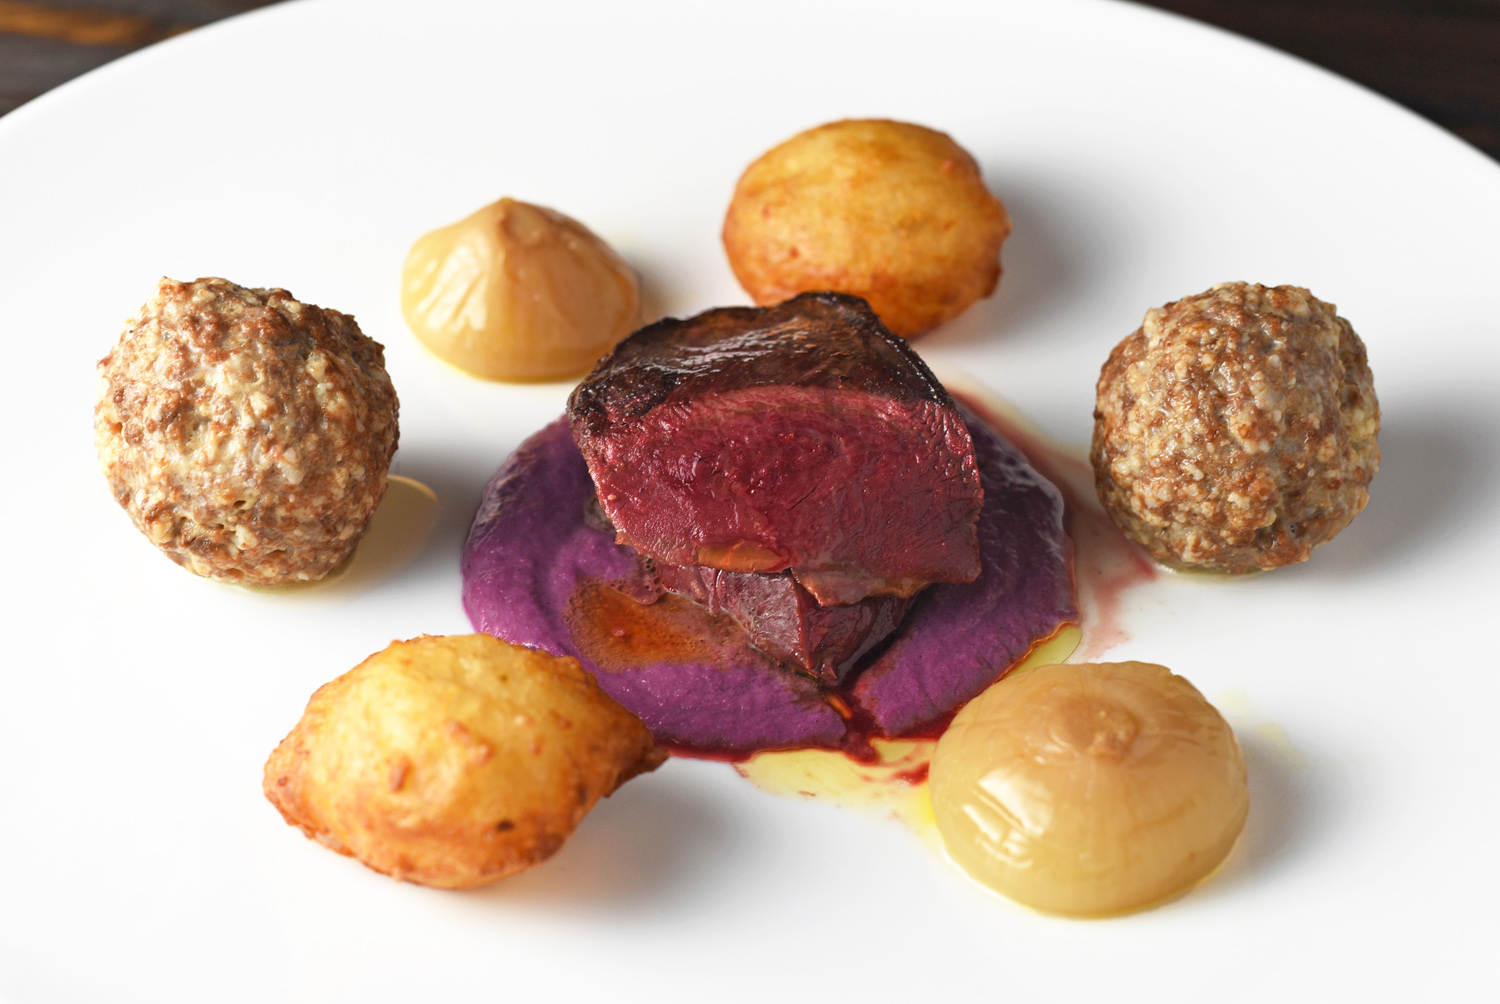 Duck Breast And Meatballs, Potato Croquettes, Caramelized Onions. and Red Cabbage Purée